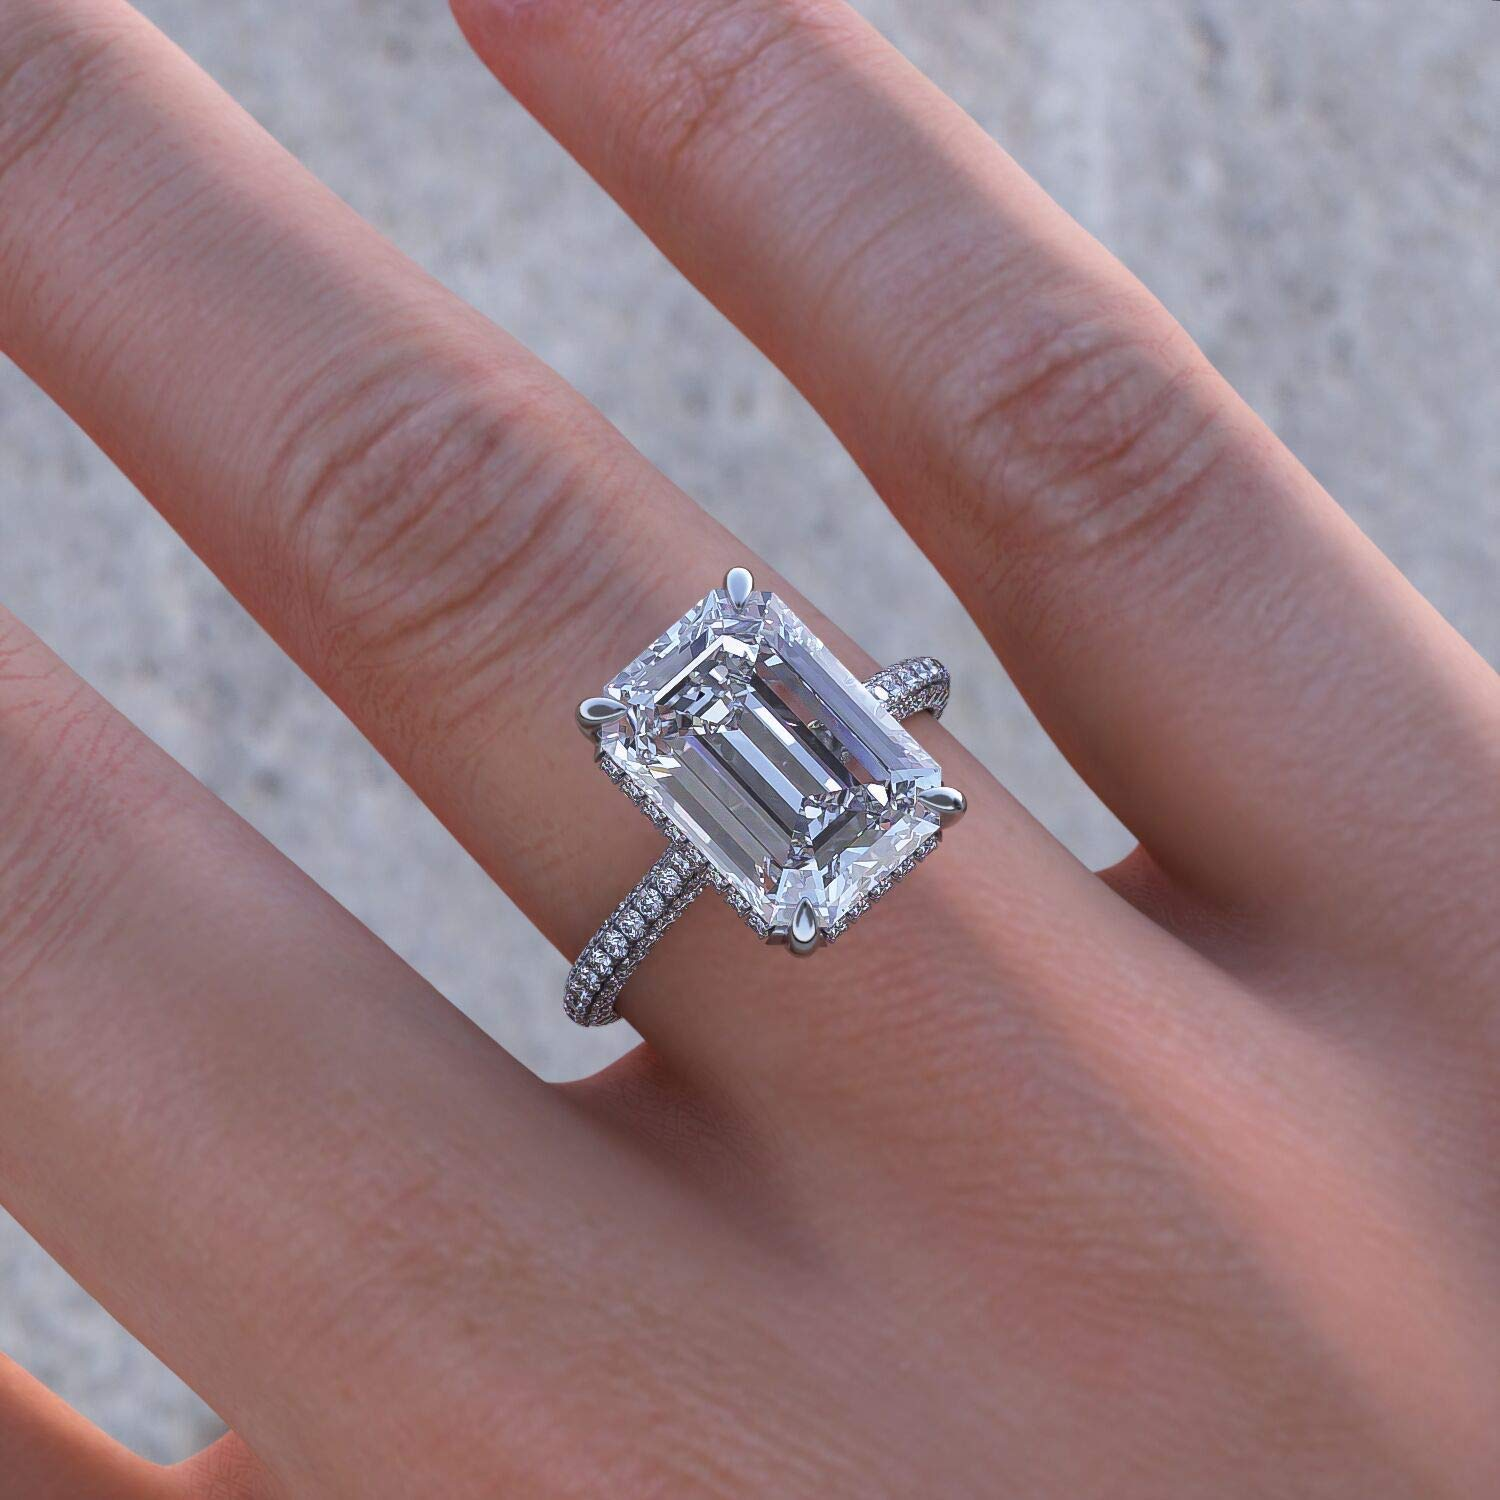 Amazon.com: KEYZAR Engagement Rings for Women, Handmade Solitaire, 5ct Emerald Cut Moissanite 0.75ct 3D Diamonds Pave, 14k or 18k White Gold Wedding Promise Rings for Her, Includes Box (D-F Color, VVS1 Clarity):